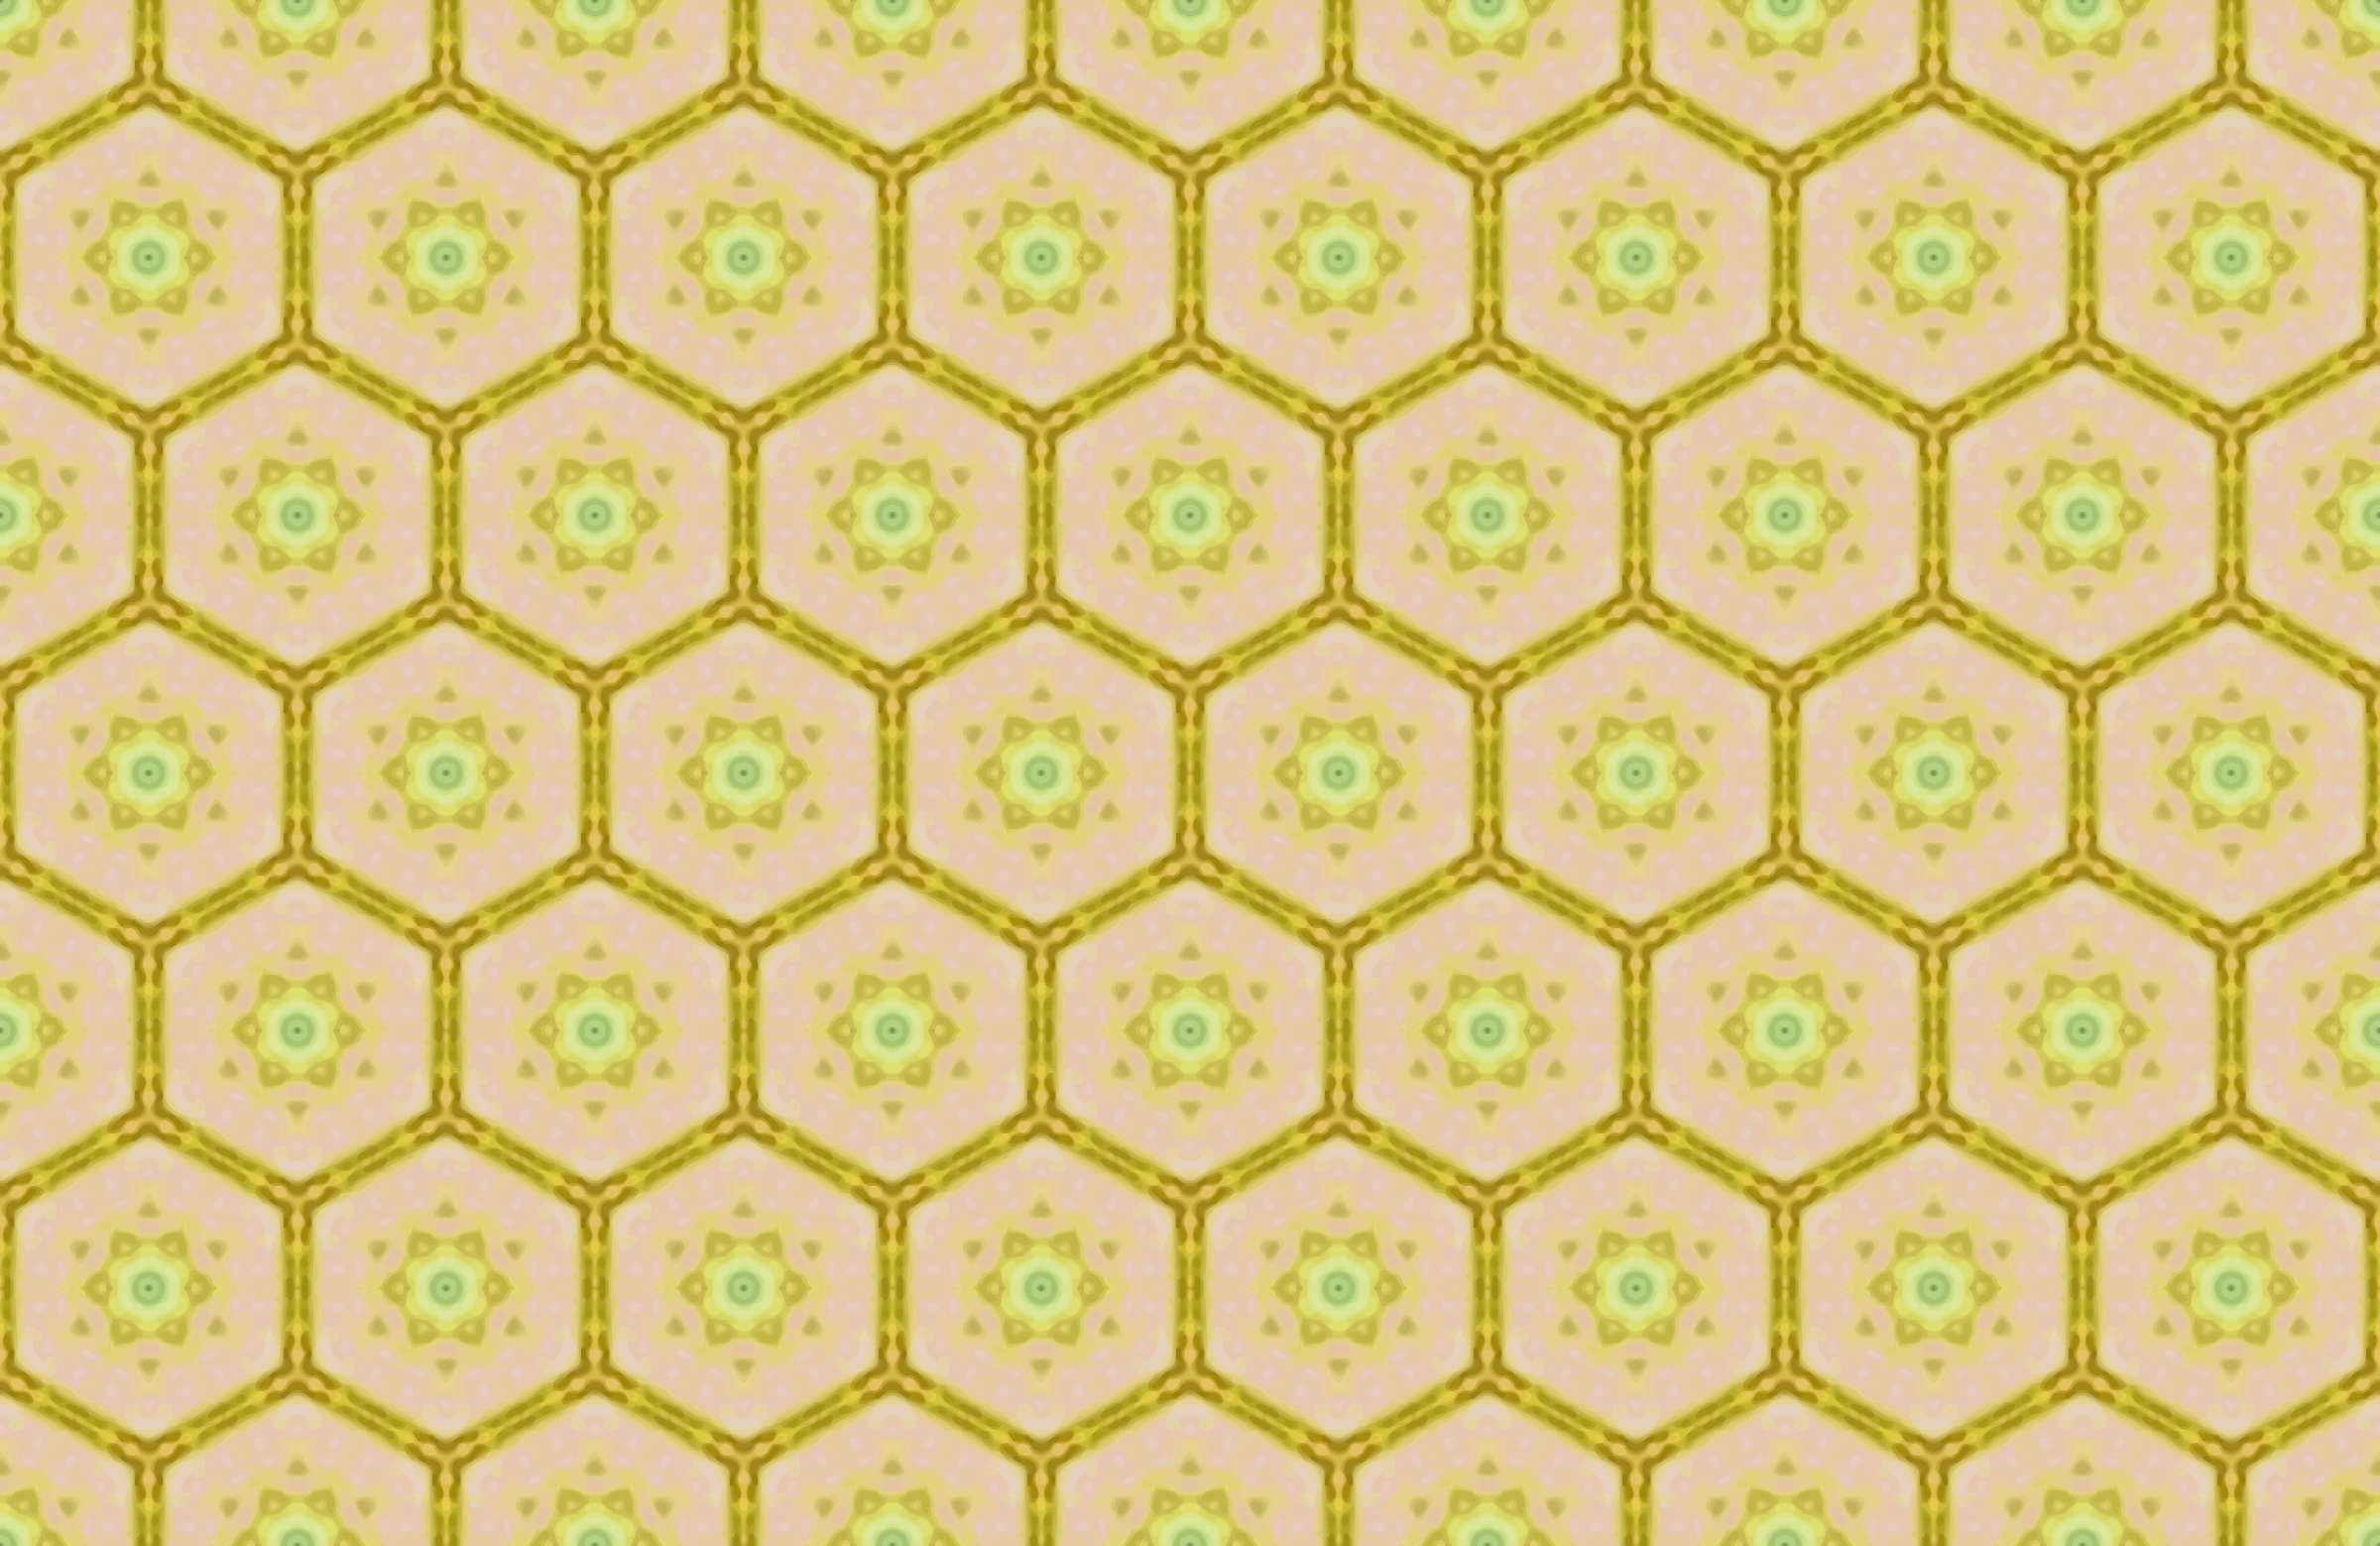 Background pattern 183 (colour 2) by Firkin